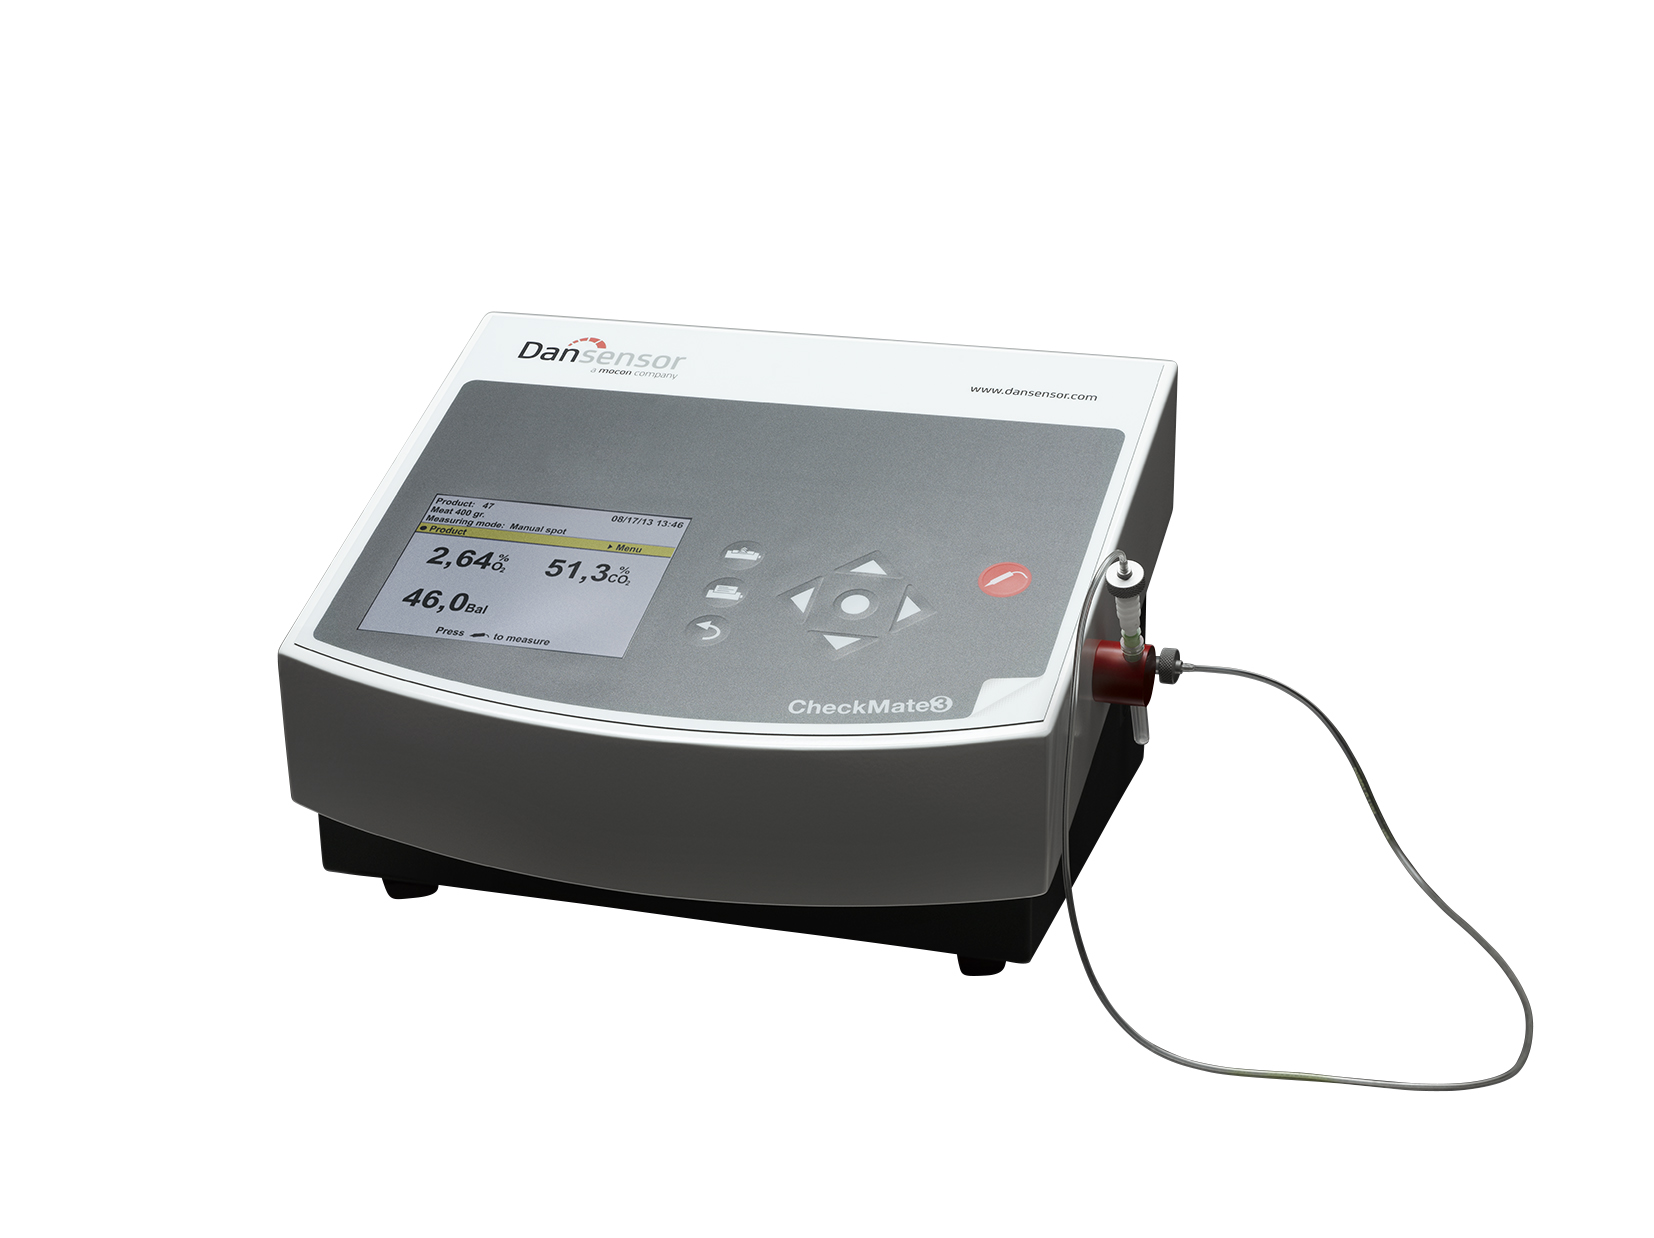 CheckMate 3 – Oxygen Analyser & Carbon Dioxide (CO2) Analyser Meter